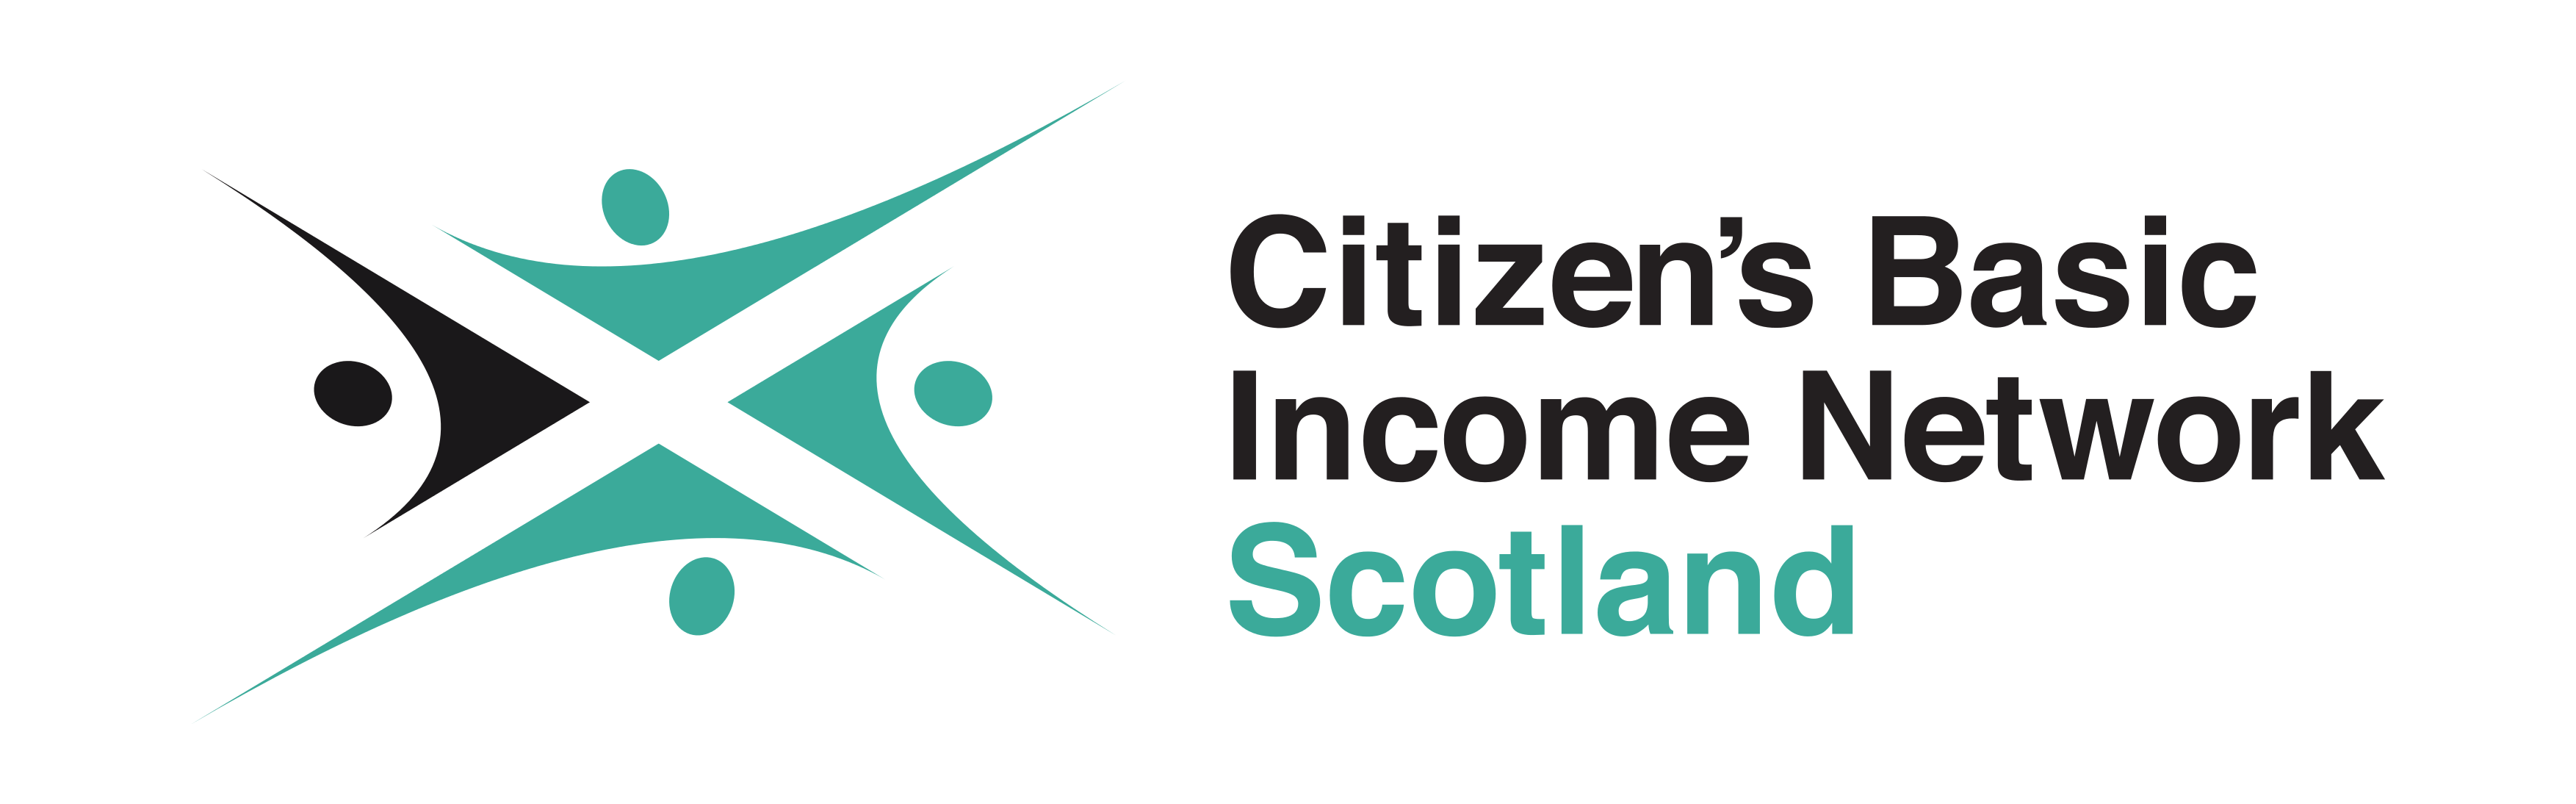 Citizen's Basic Income Network Scotland logo